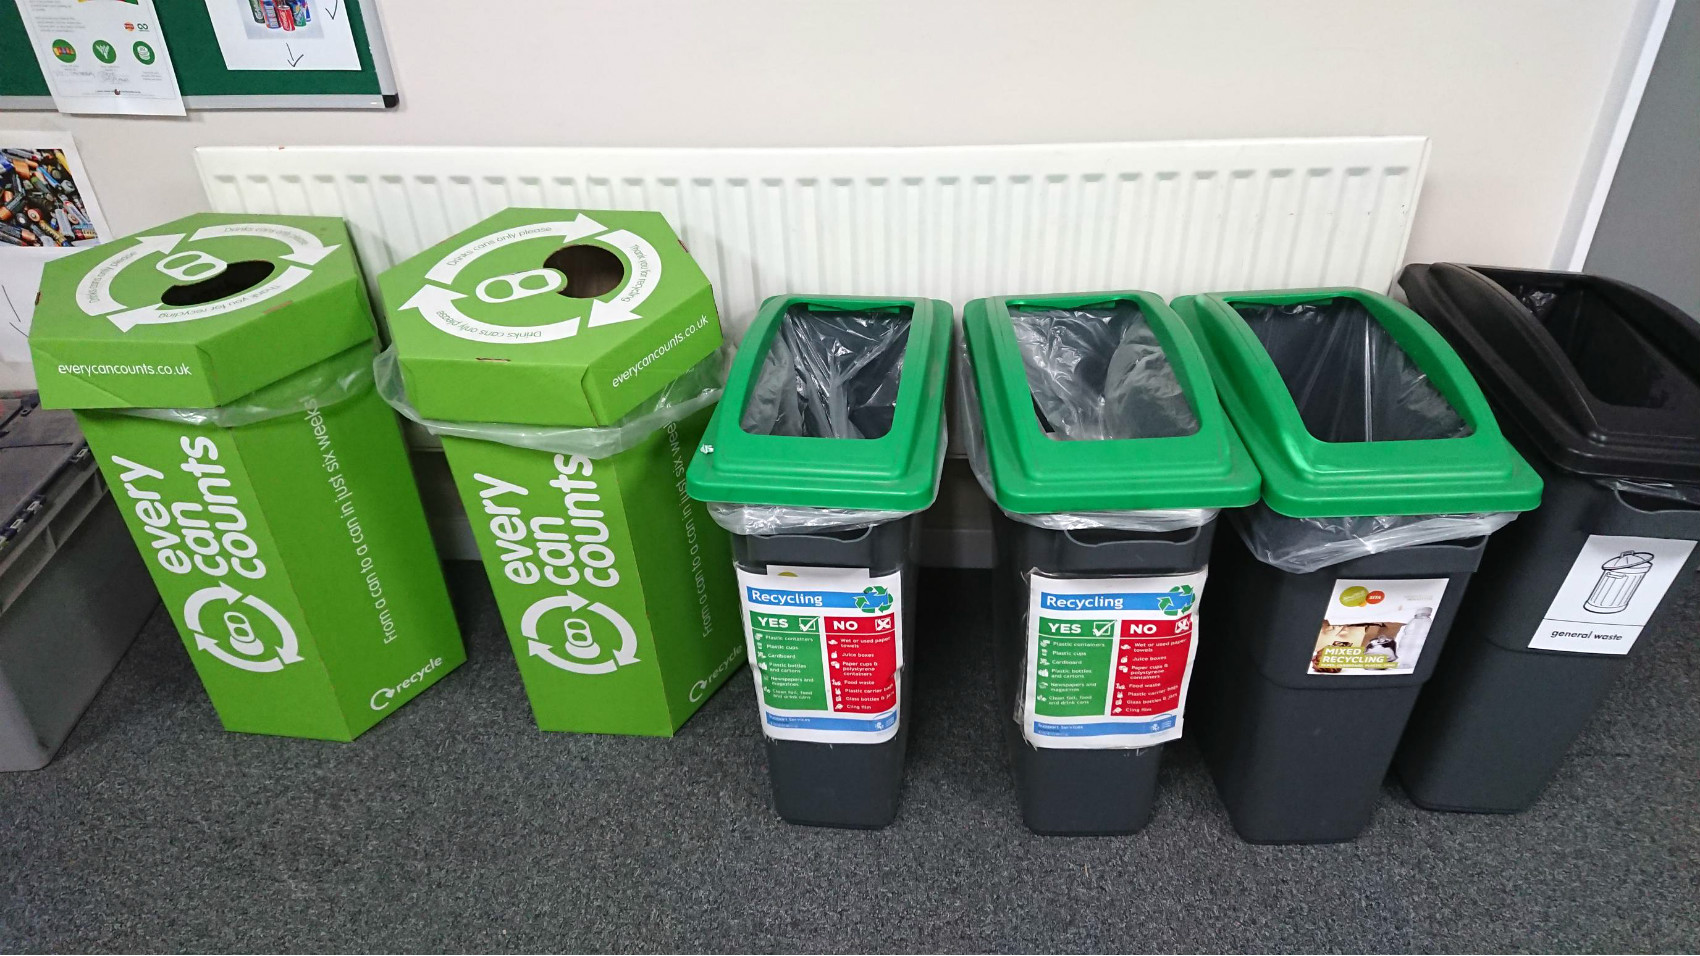 A row of different recycling containers, including some for cans and batteries, in an office at Canterbury Police Station.